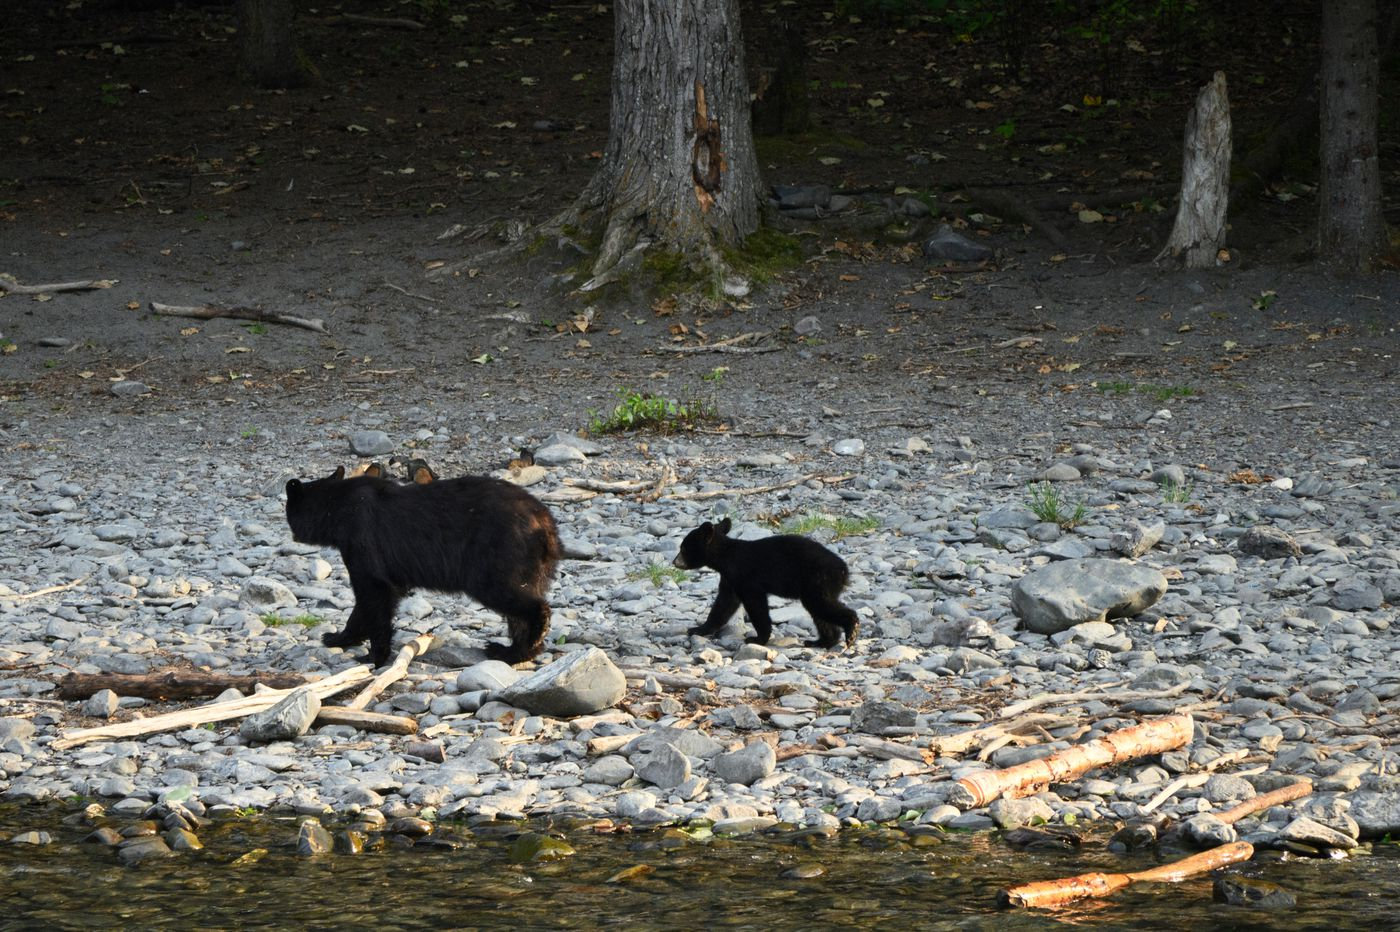 A black bear sow and cub pair were briefly spotted near where brown bears also fished on the Kenai River on July 30, 2020. (Marc Lester / ADN)